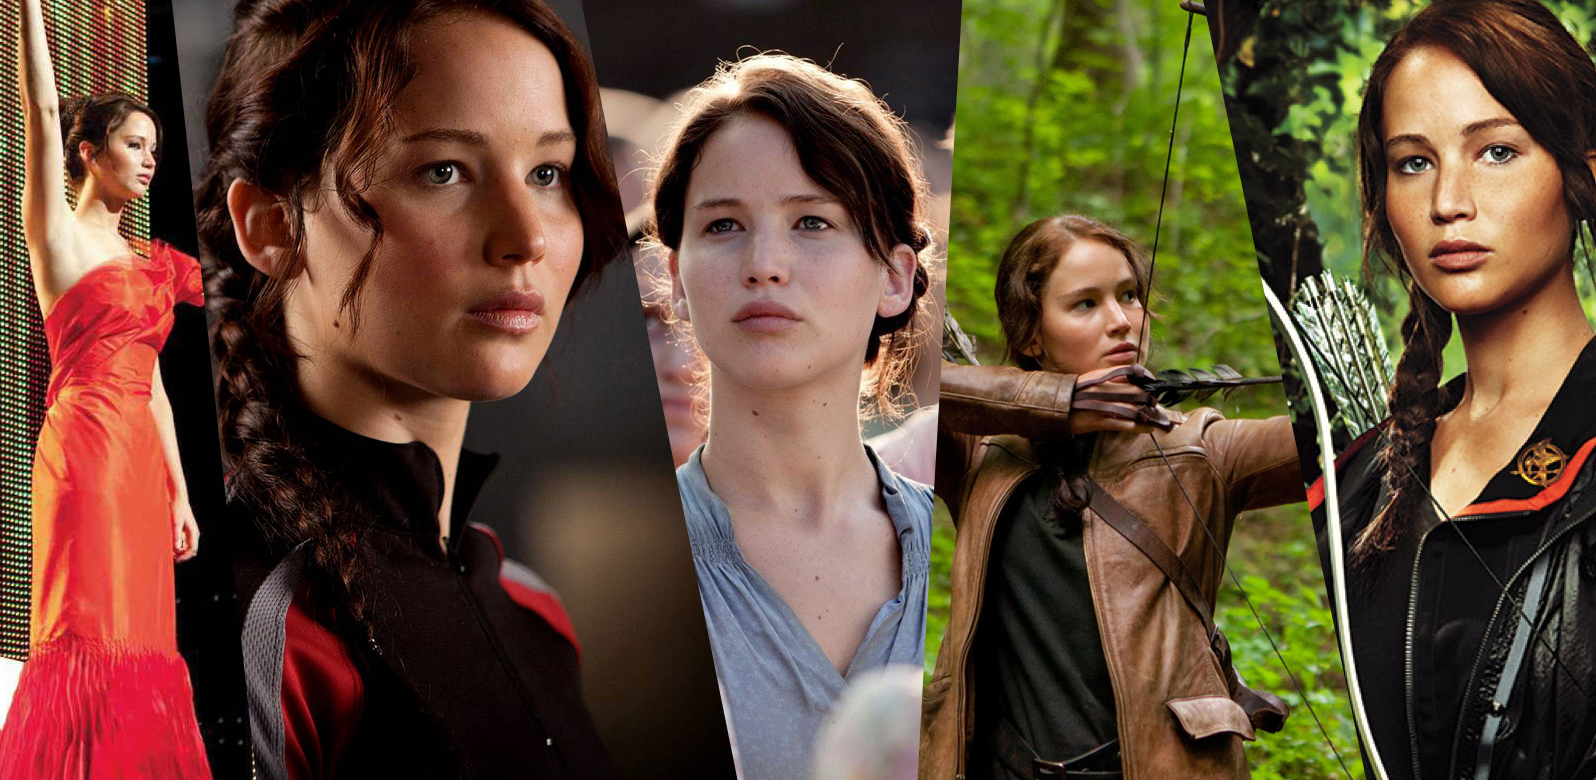 katniss everdeen hero The hunger games katniss character  the main character and protagonist is 16 year old katniss everdeen,  although katniss may come off as a hero many.